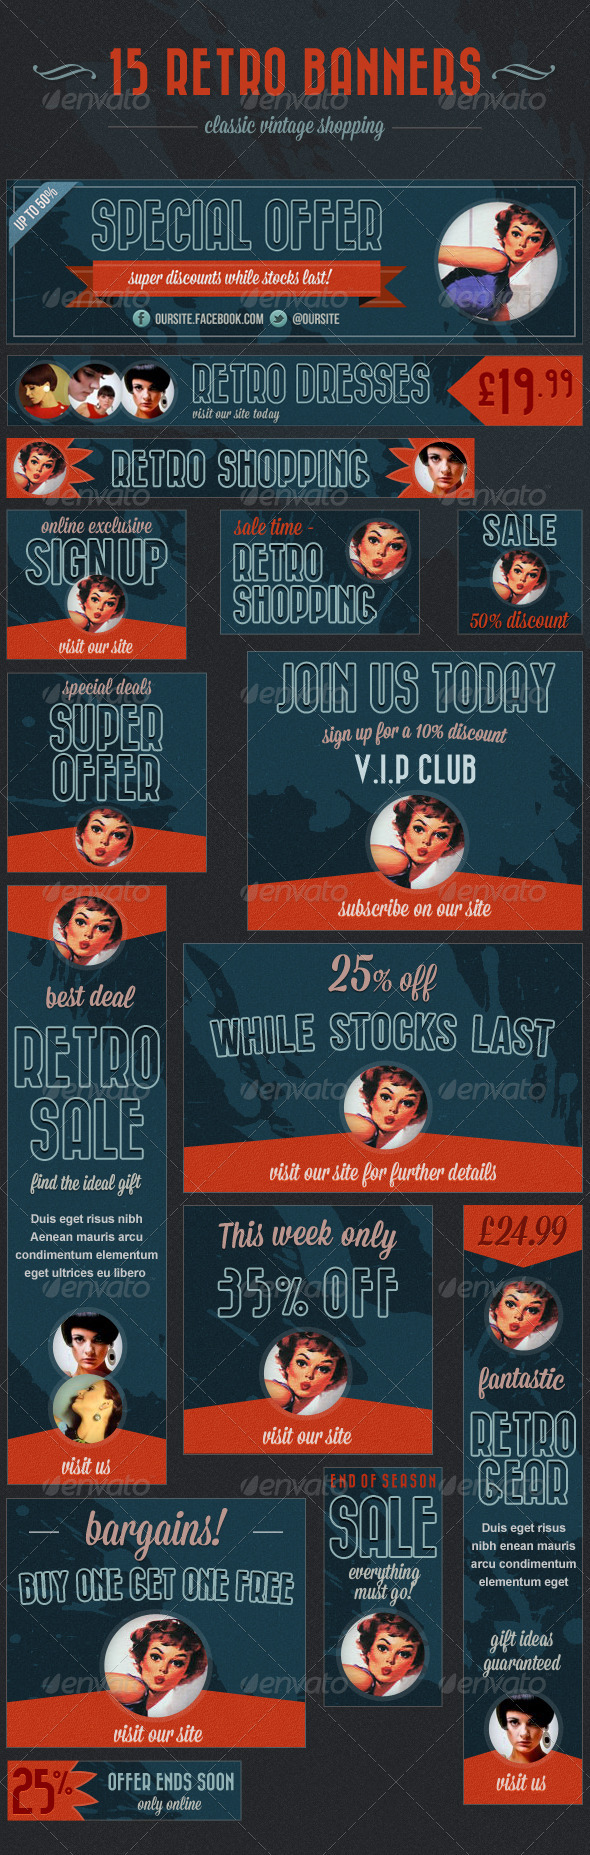 15 Retro Banners - Vintage Shopping Ads - Banners &amp; Ads Web Elements